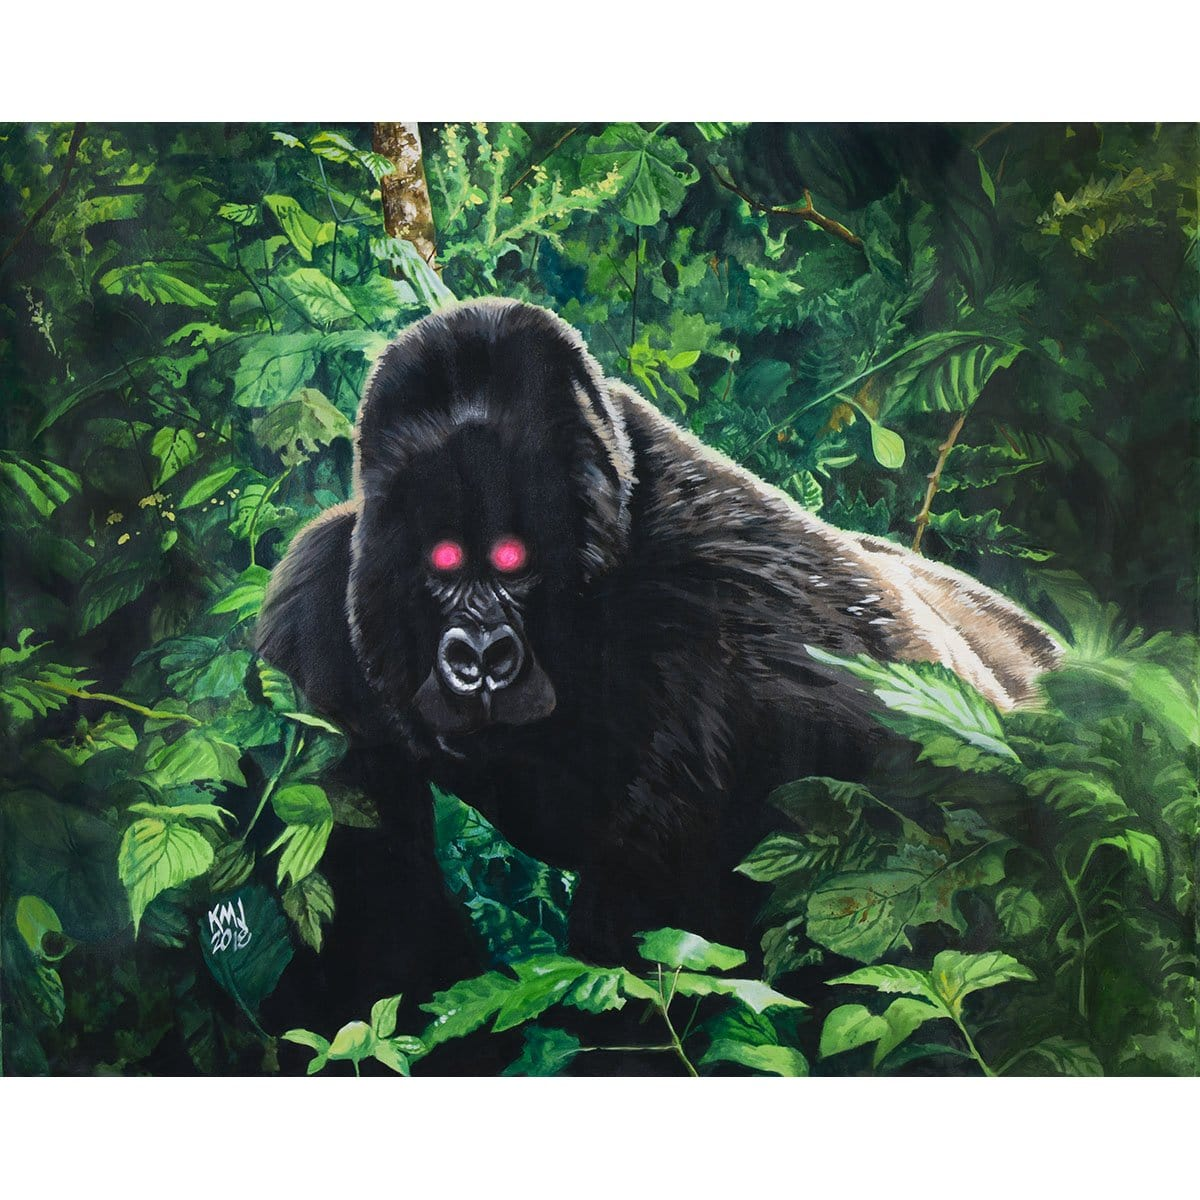 Kird Ape (Updated) Print